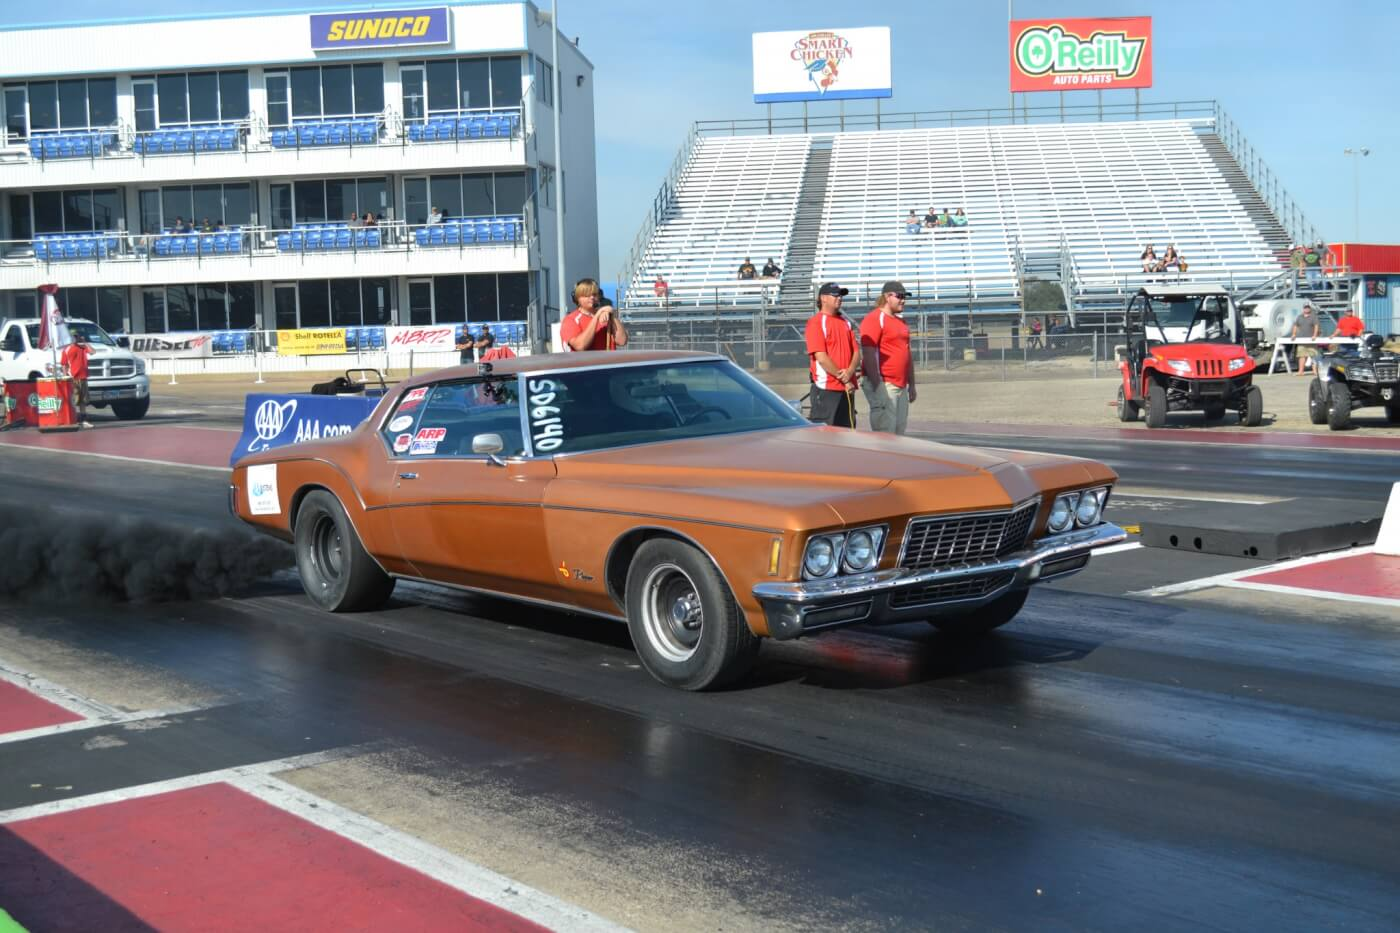 Another unique vehicle on the strip was Brandon Carr's 5.9L VP44 Cummins-powered Buick Riviera, which actually had to slow down from its usual low 11-second elapsed times in order to run 11.90.